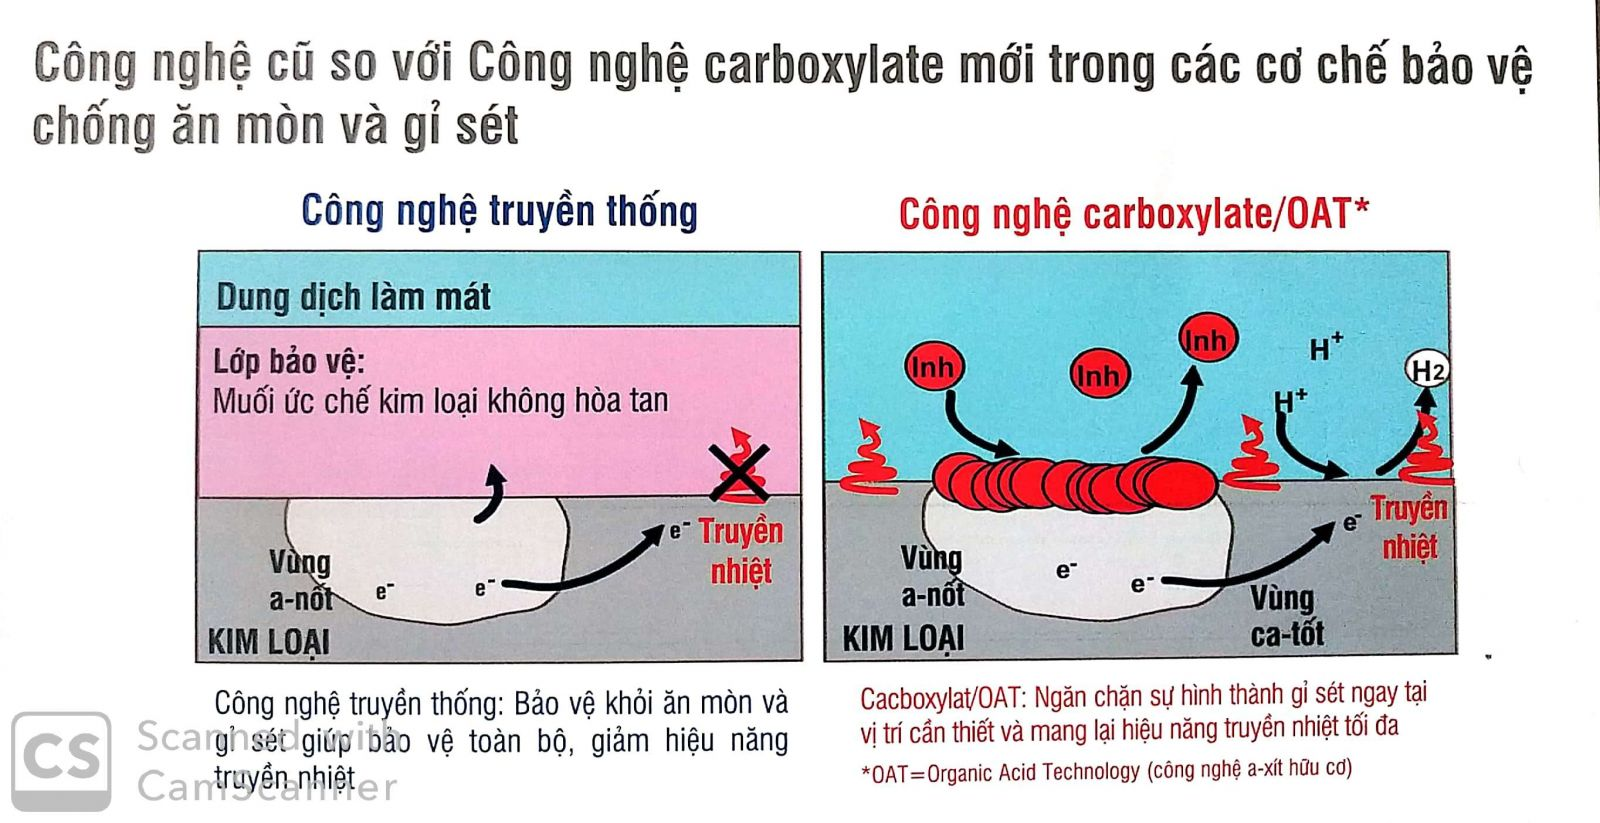 cong nghe pha che dung dich nuoc lam mat